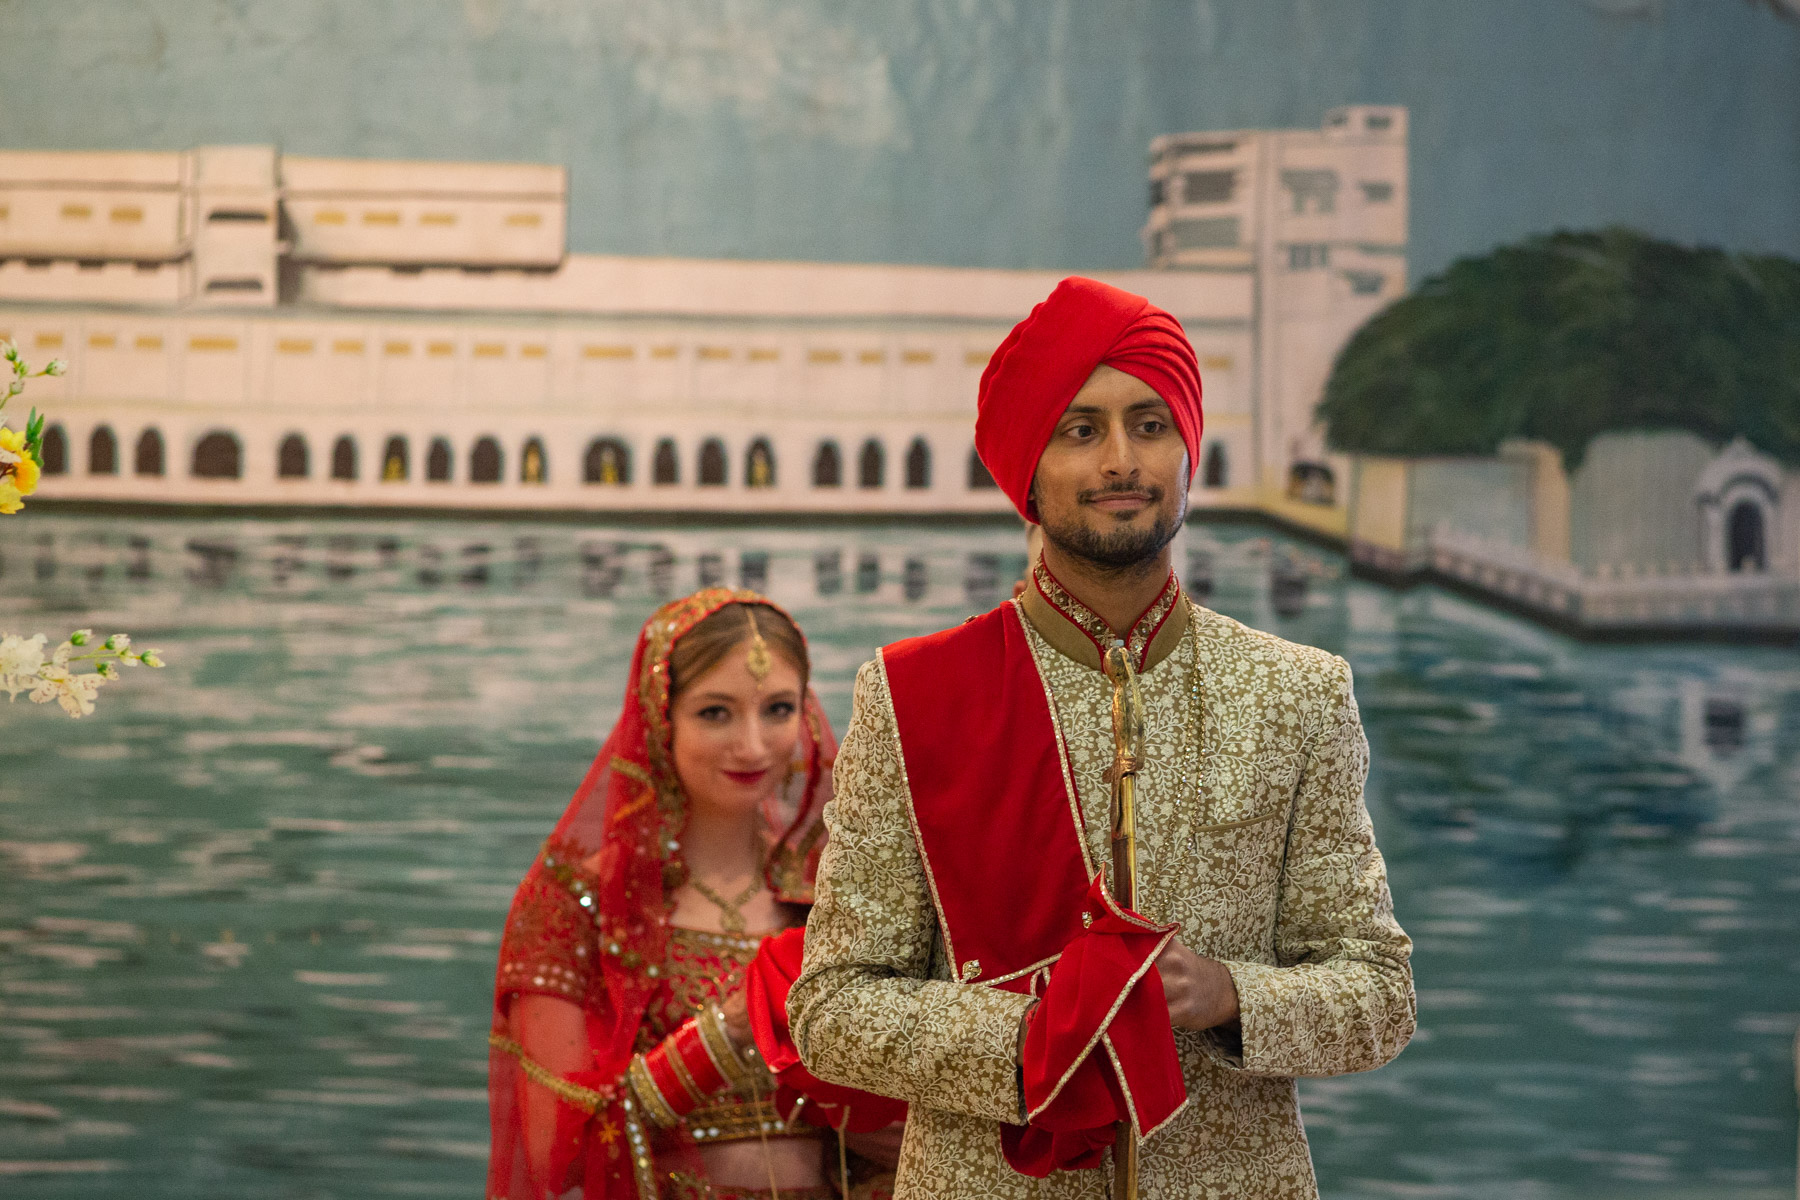 Sikh wedding ceremony with bride and groom